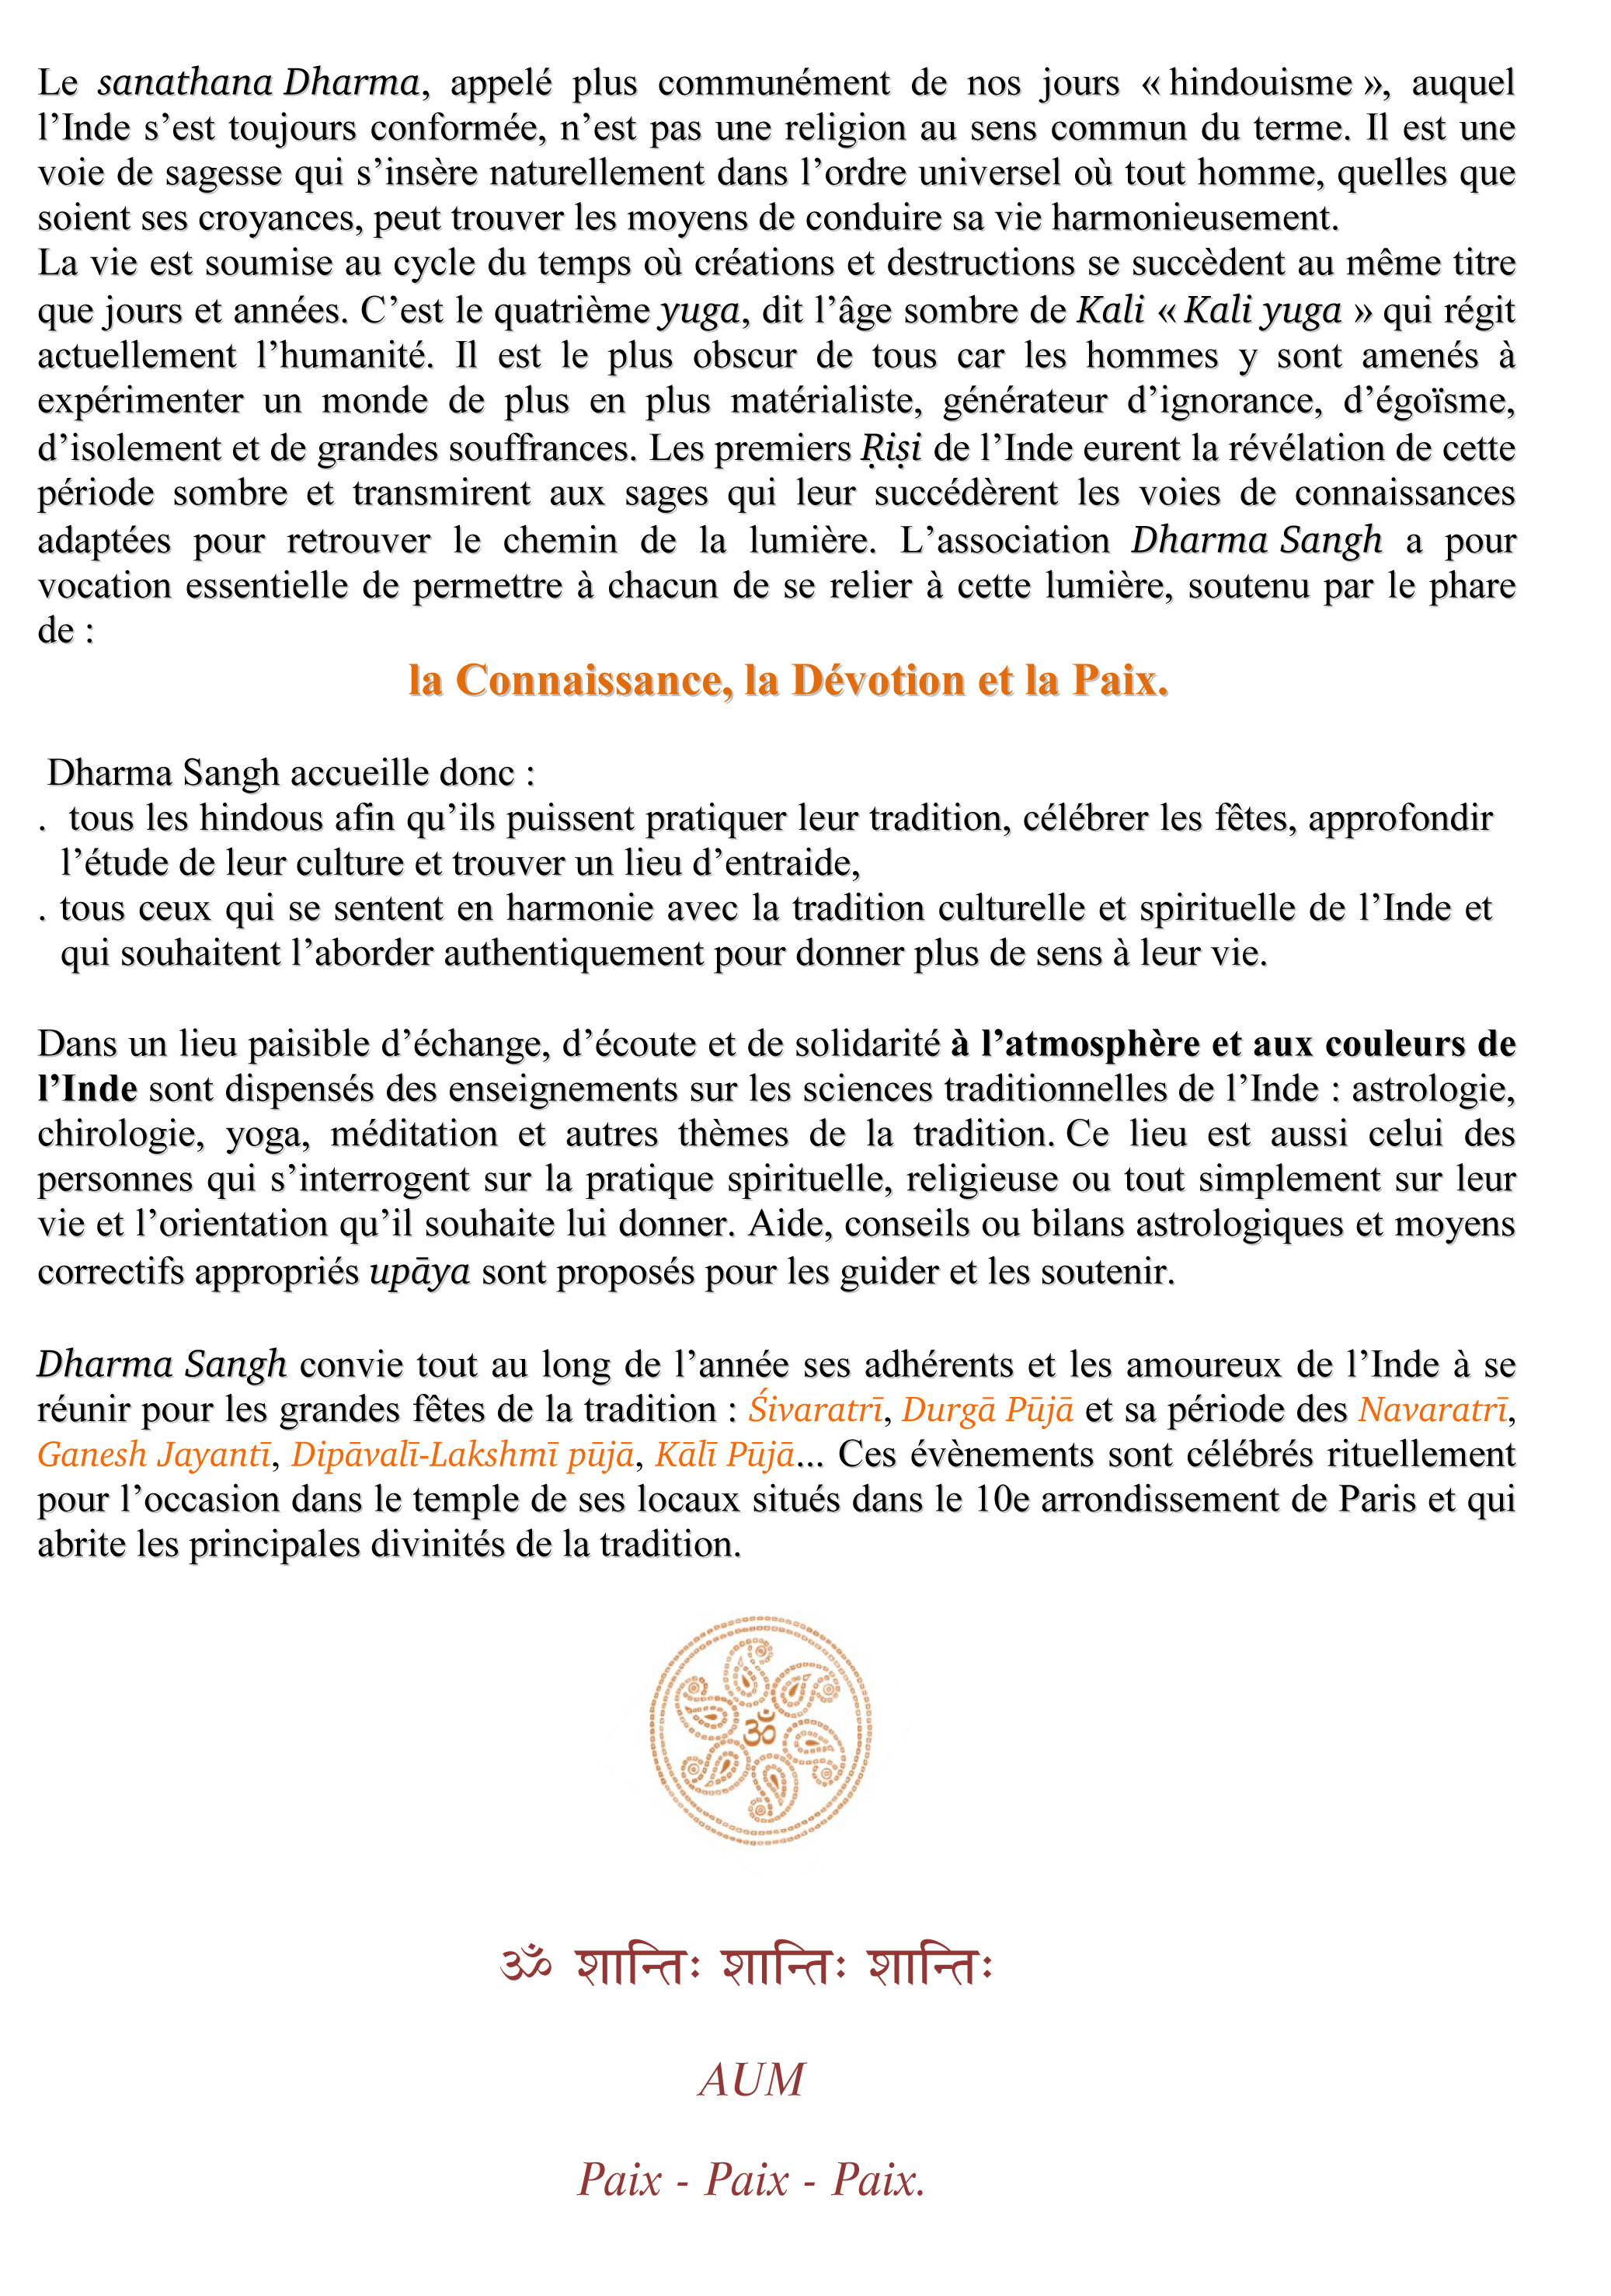 vocation de l'association-2